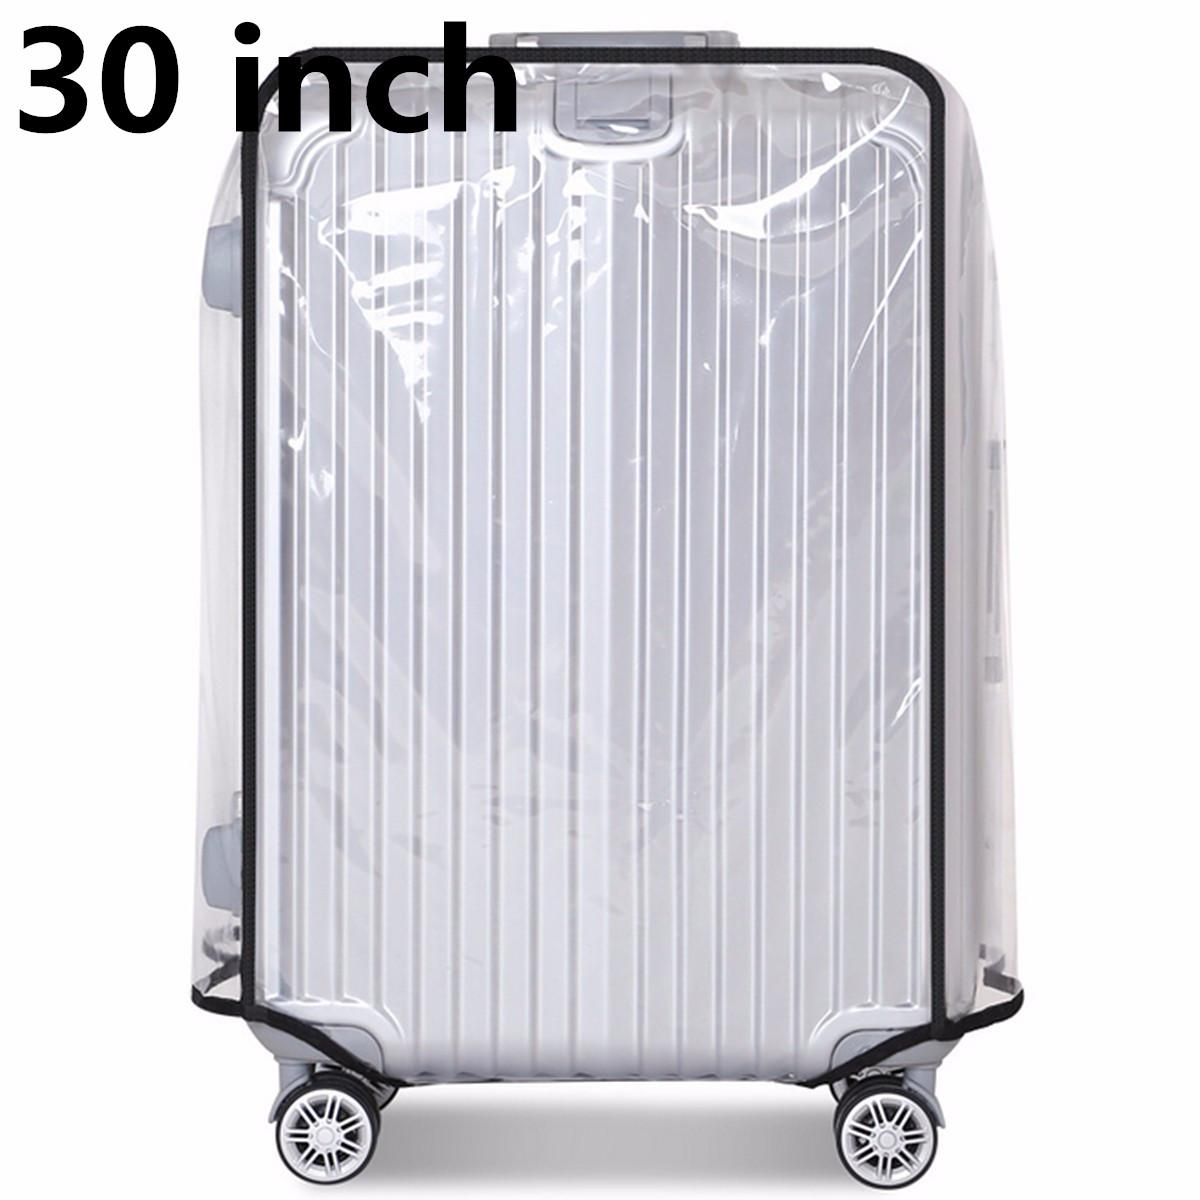 537e0a143 30inch PVC Transparent Travel Luggage Protector Suitcase Cover Usable  Waterproof fashionable #30inch